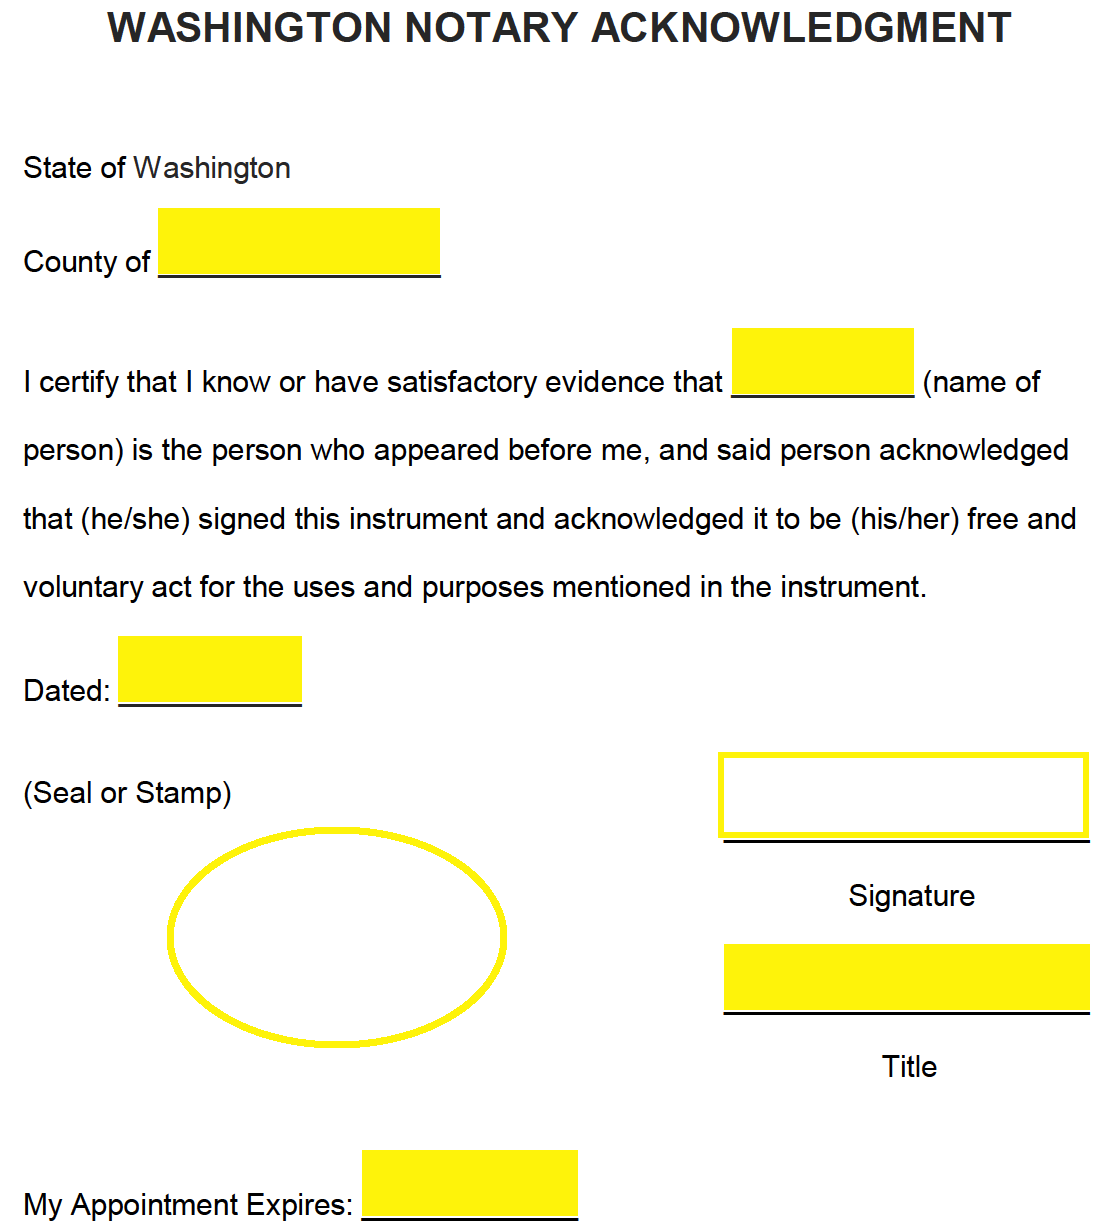 The Notary May Finalize Form By Supplying Their Seal Stamp Signature Title And Appointment Expiration Date